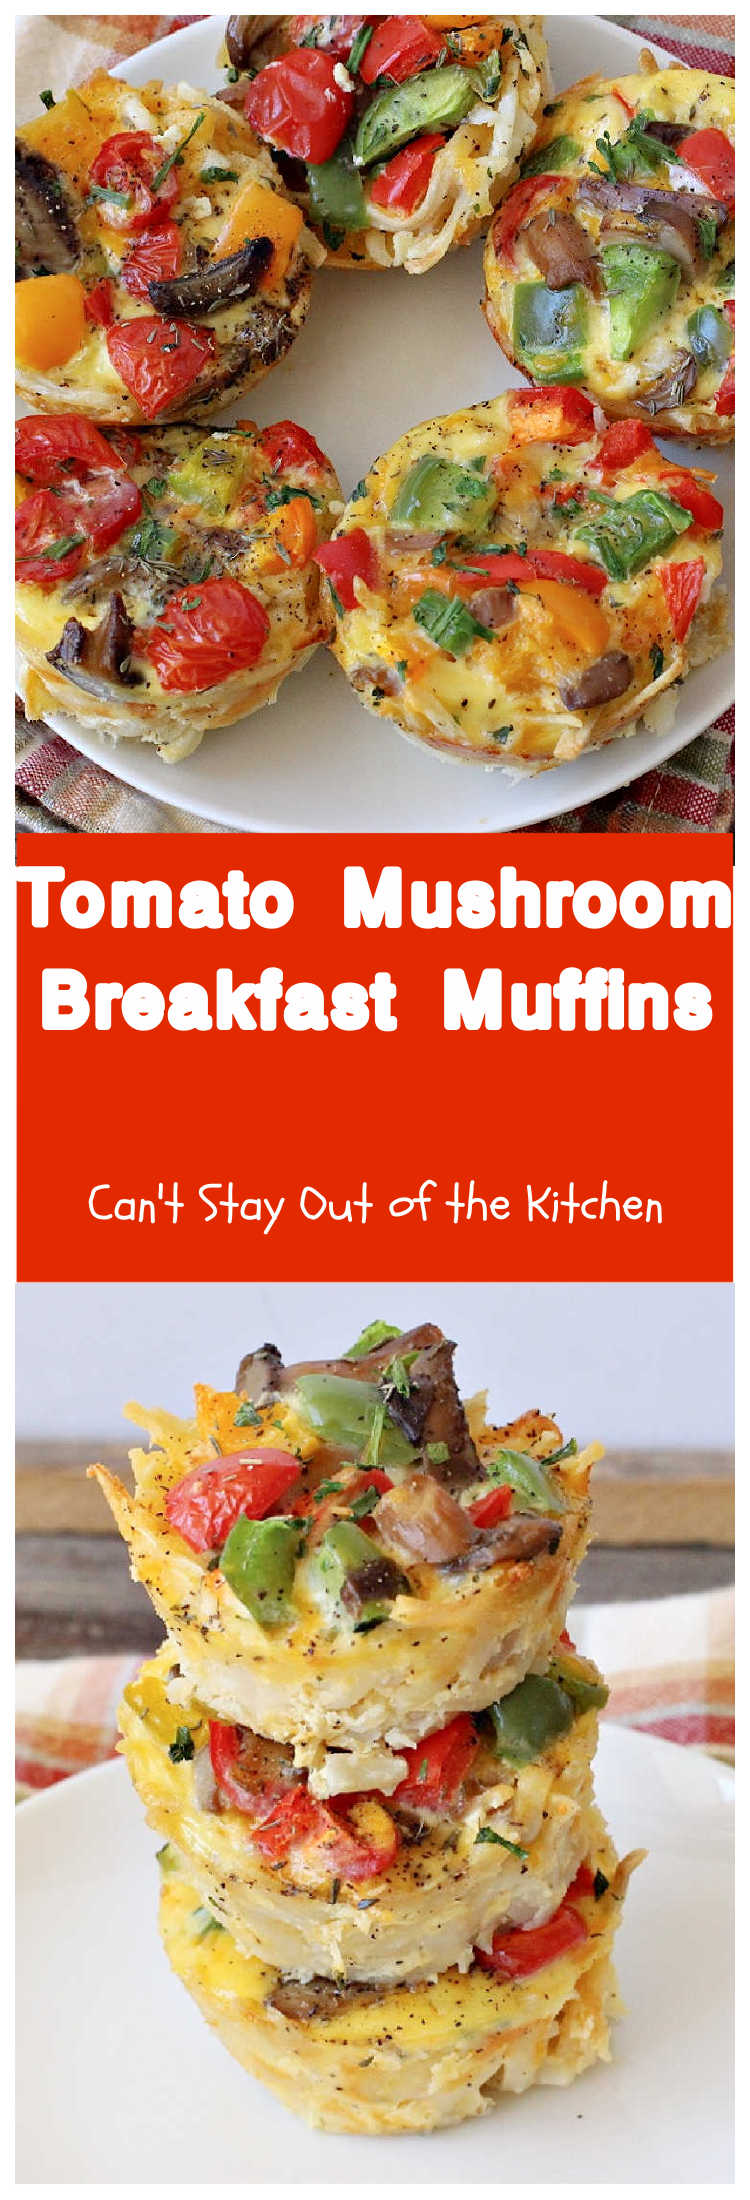 Tomato Mushroom Breakfast Muffins   Can't Stay Out of the Kitchen   these fabulous #vegetarian #breakfast #muffins are the perfect choice for any breakfast, especially the #holidays. Can freeze and microwave for a quick & #healthy breakfast meal, too. #tomatoes #mushrooms #GlutenFree #potatoes #BreakfastMuffins #TomatoMushroomBreakfastMuffins